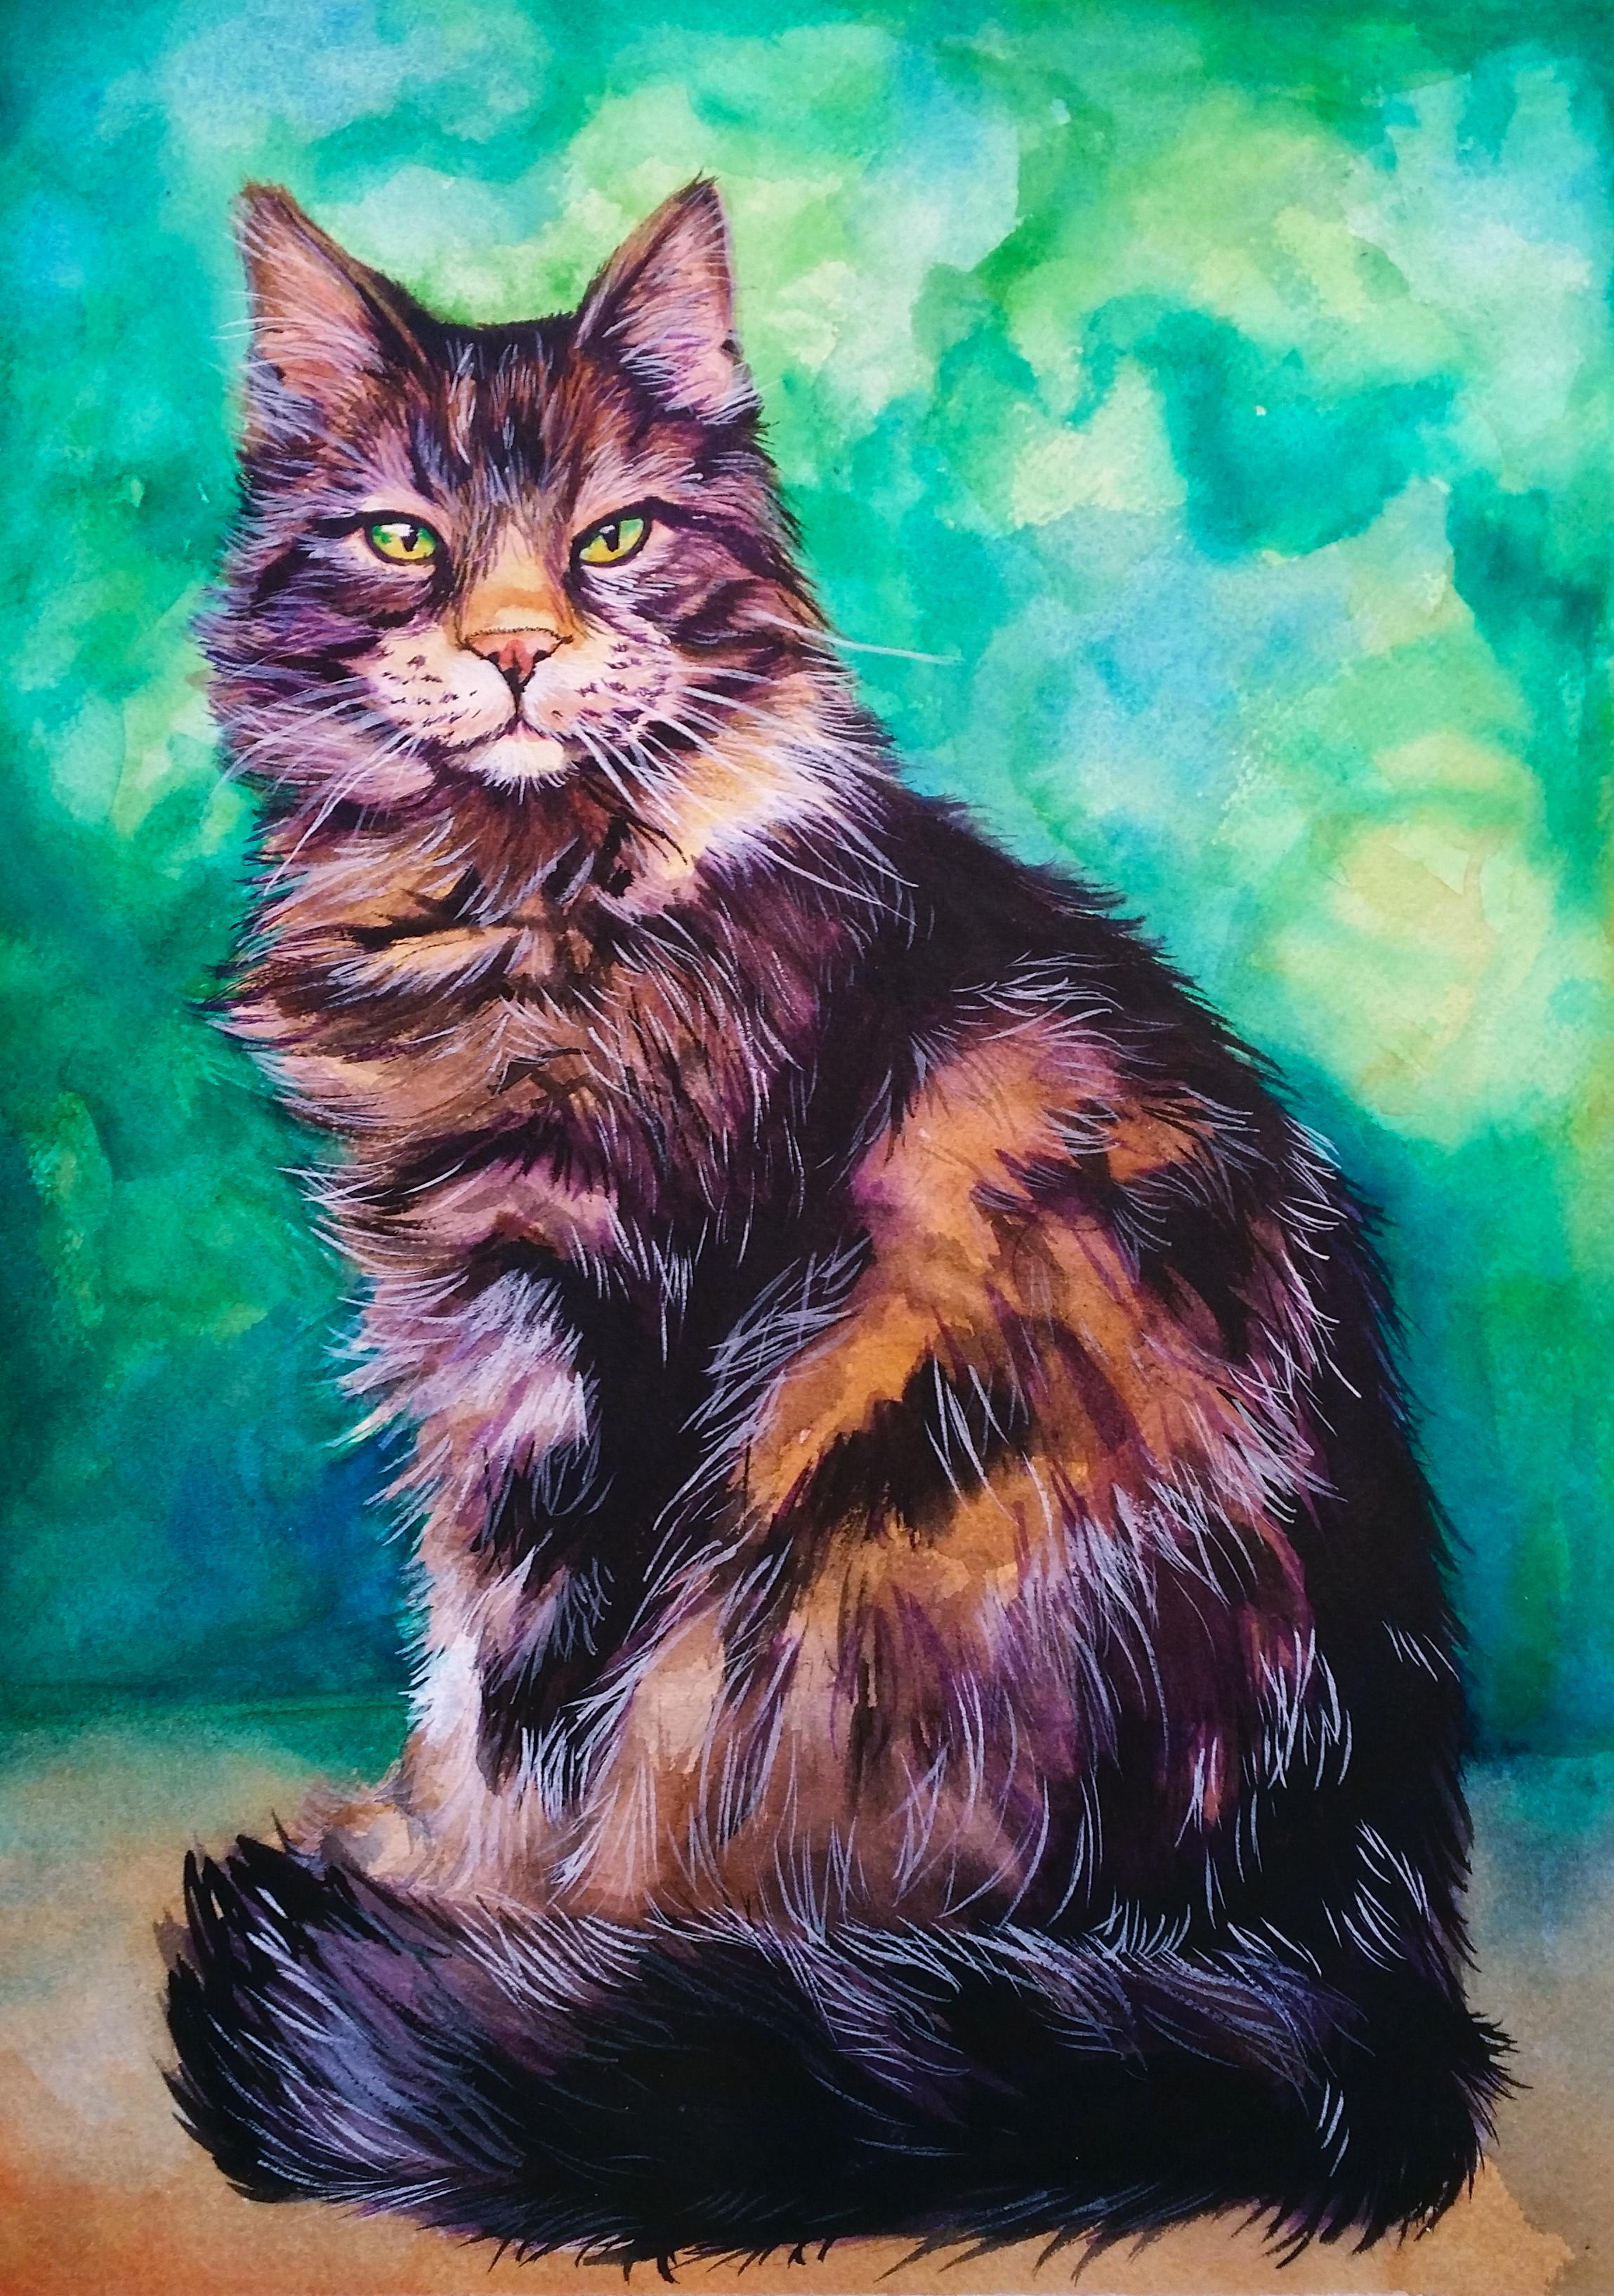 Watercolor Intermediate to Advanced July/August